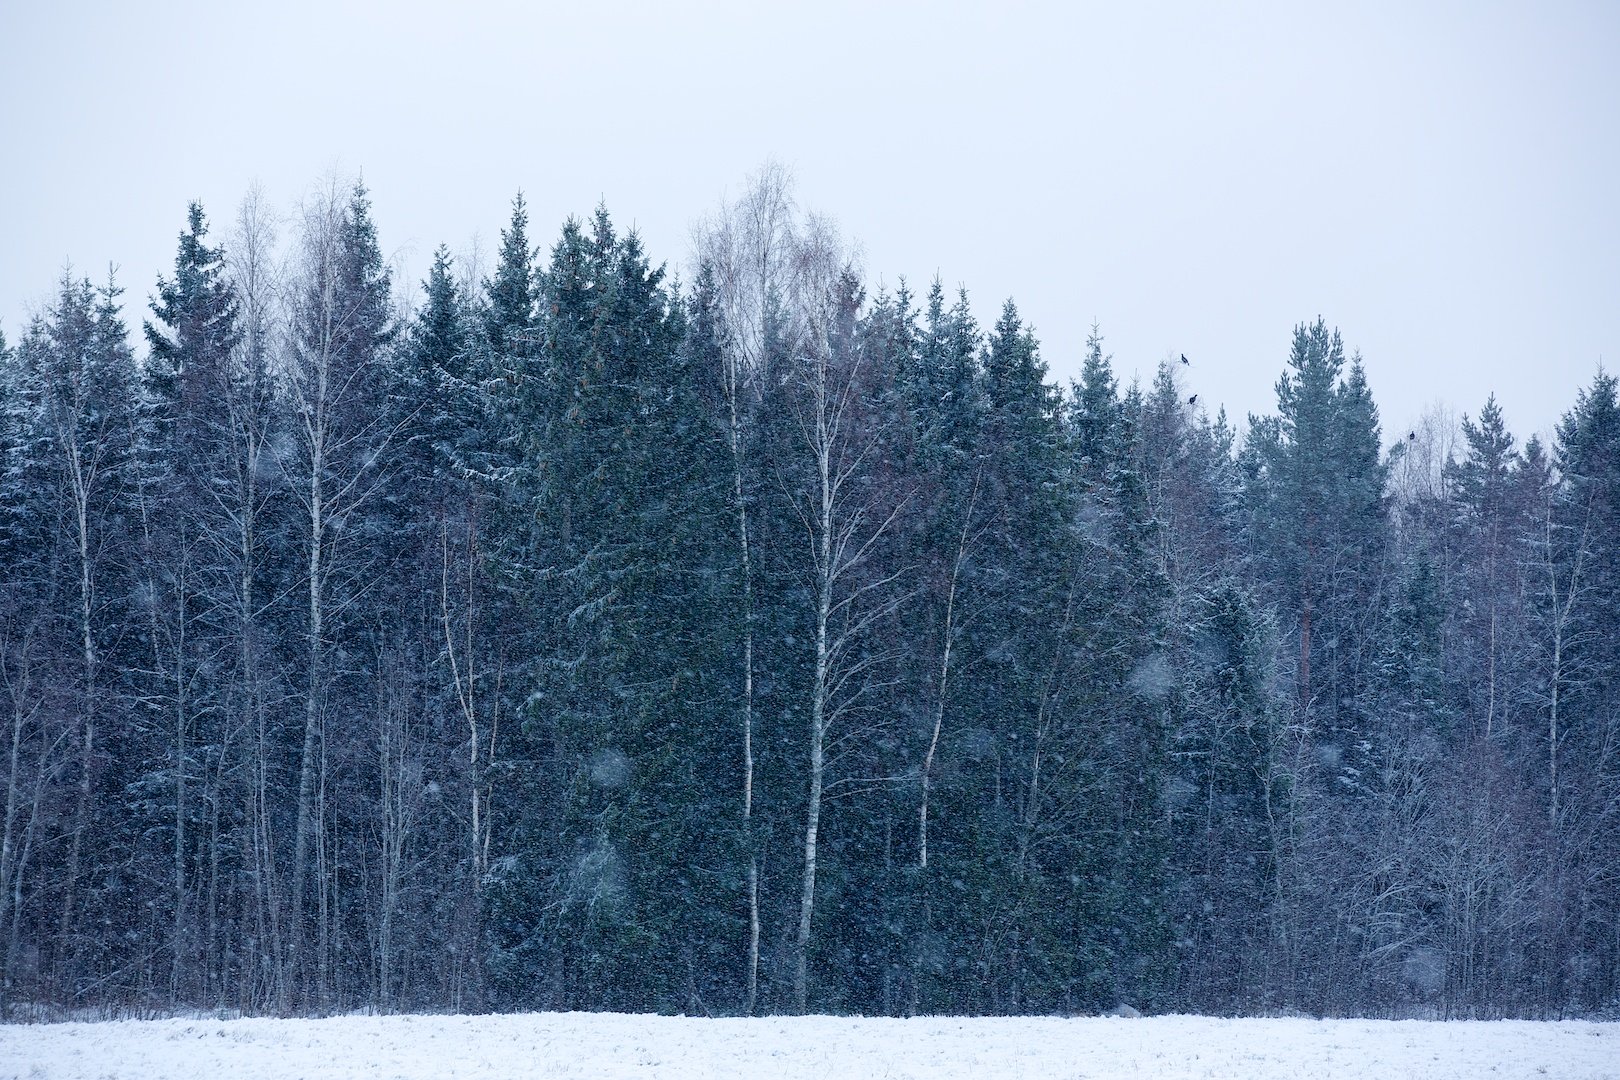 A flock of Black grouse (Tetrao tetrix) feeding in the snowfall on birch sprouts. Lappträsk, January 2014.